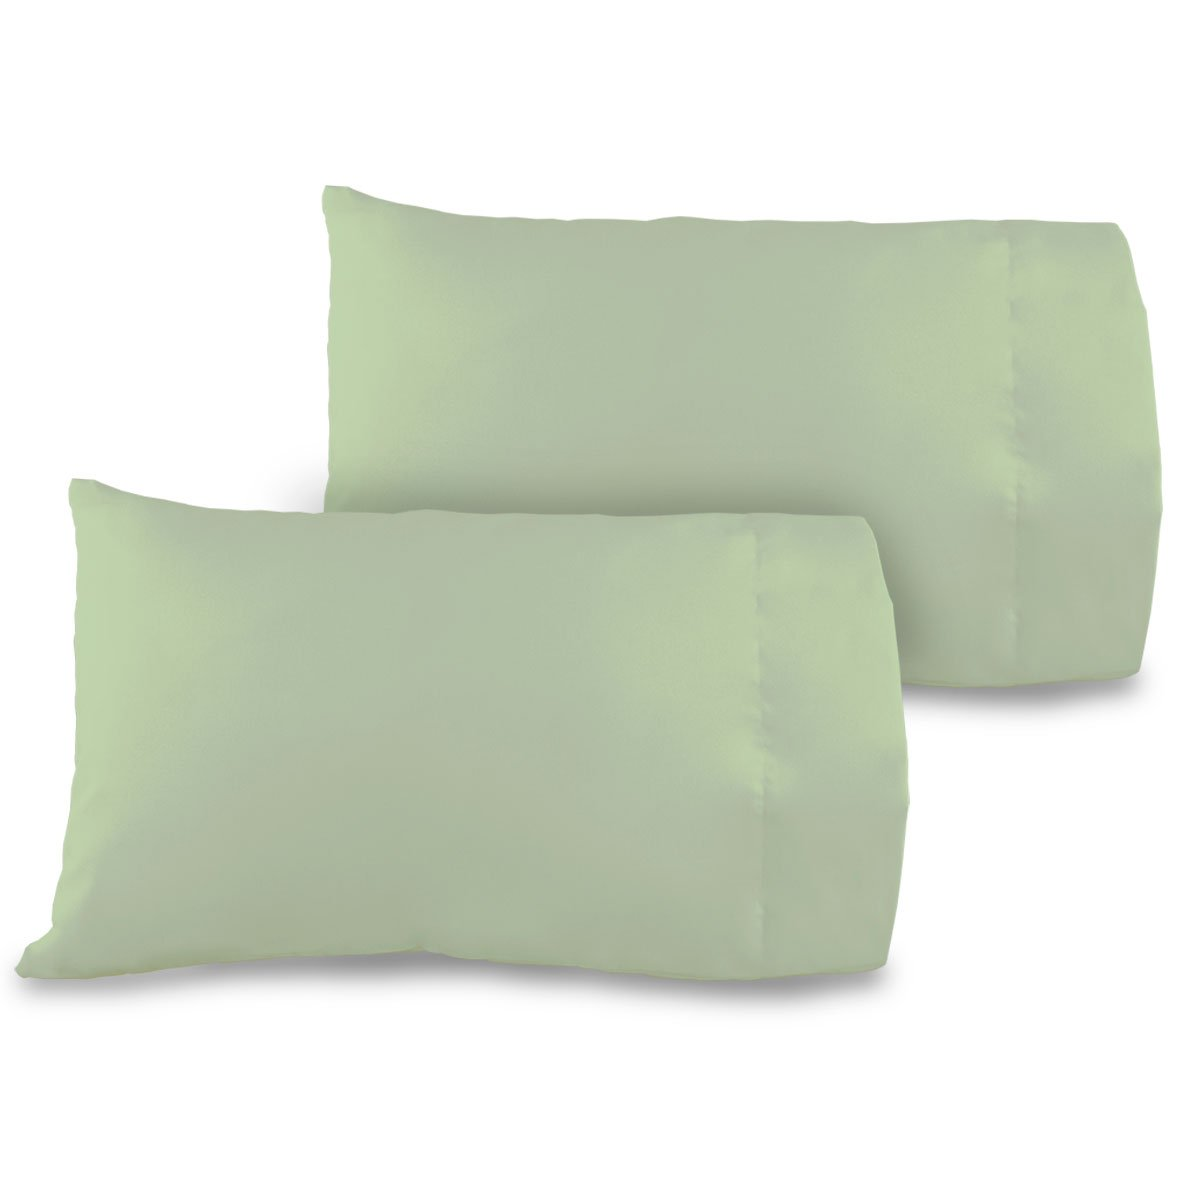 Allyson Brooke Home 2 pack 12x18 Pillowcase 100% cotton Perfect for MyPillow Go Anywhere Pillow Travel size, Toddler size Pillowcase 12x18 Color Sage